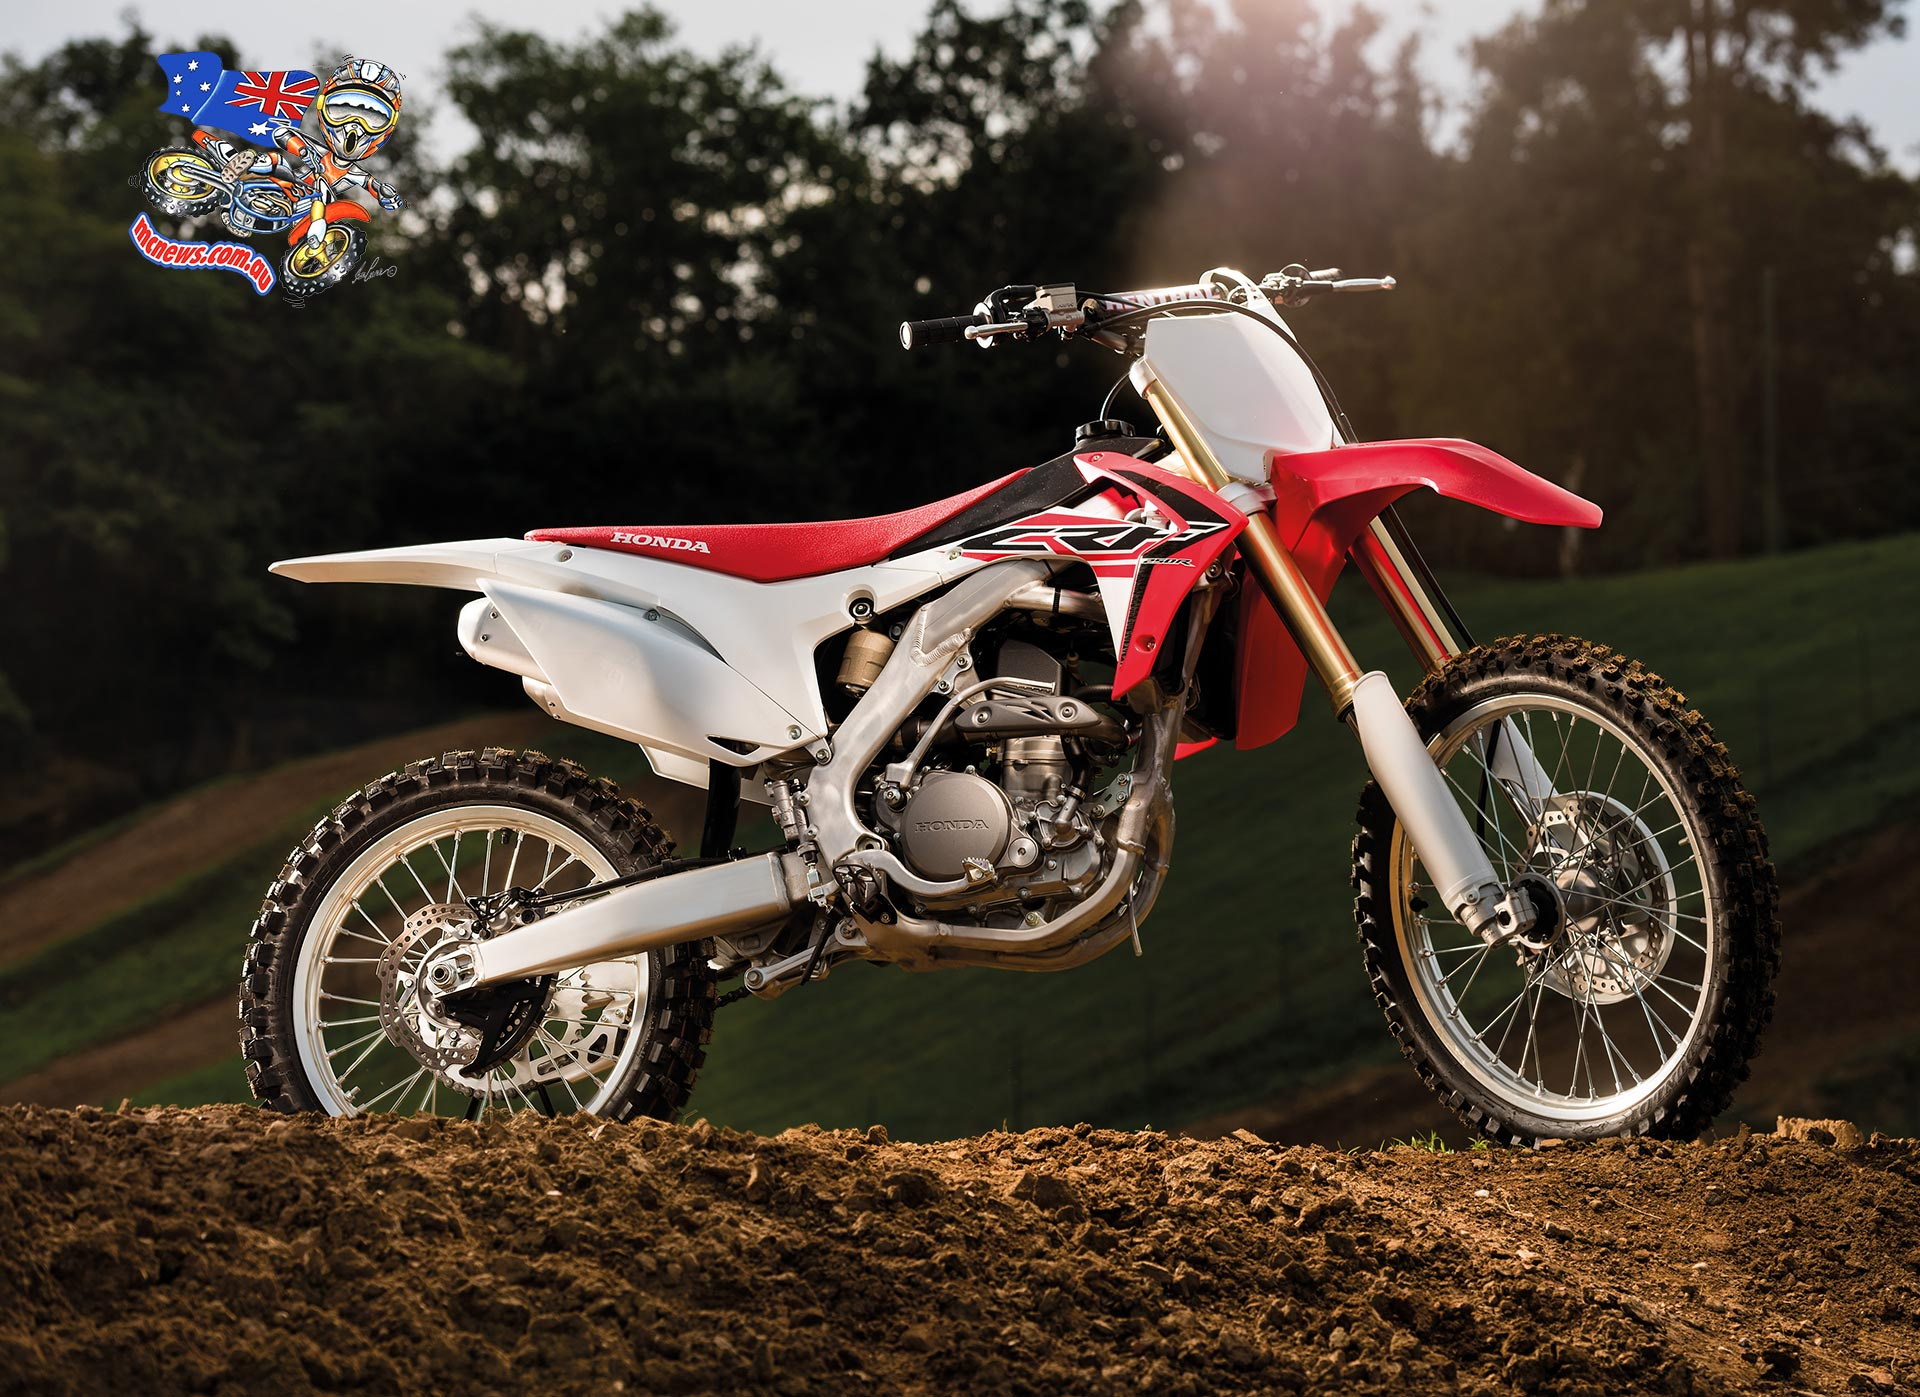 Astounding 2015 Crf250R Crf450R Finance Offer Mcnews Com Au Evergreenethics Interior Chair Design Evergreenethicsorg